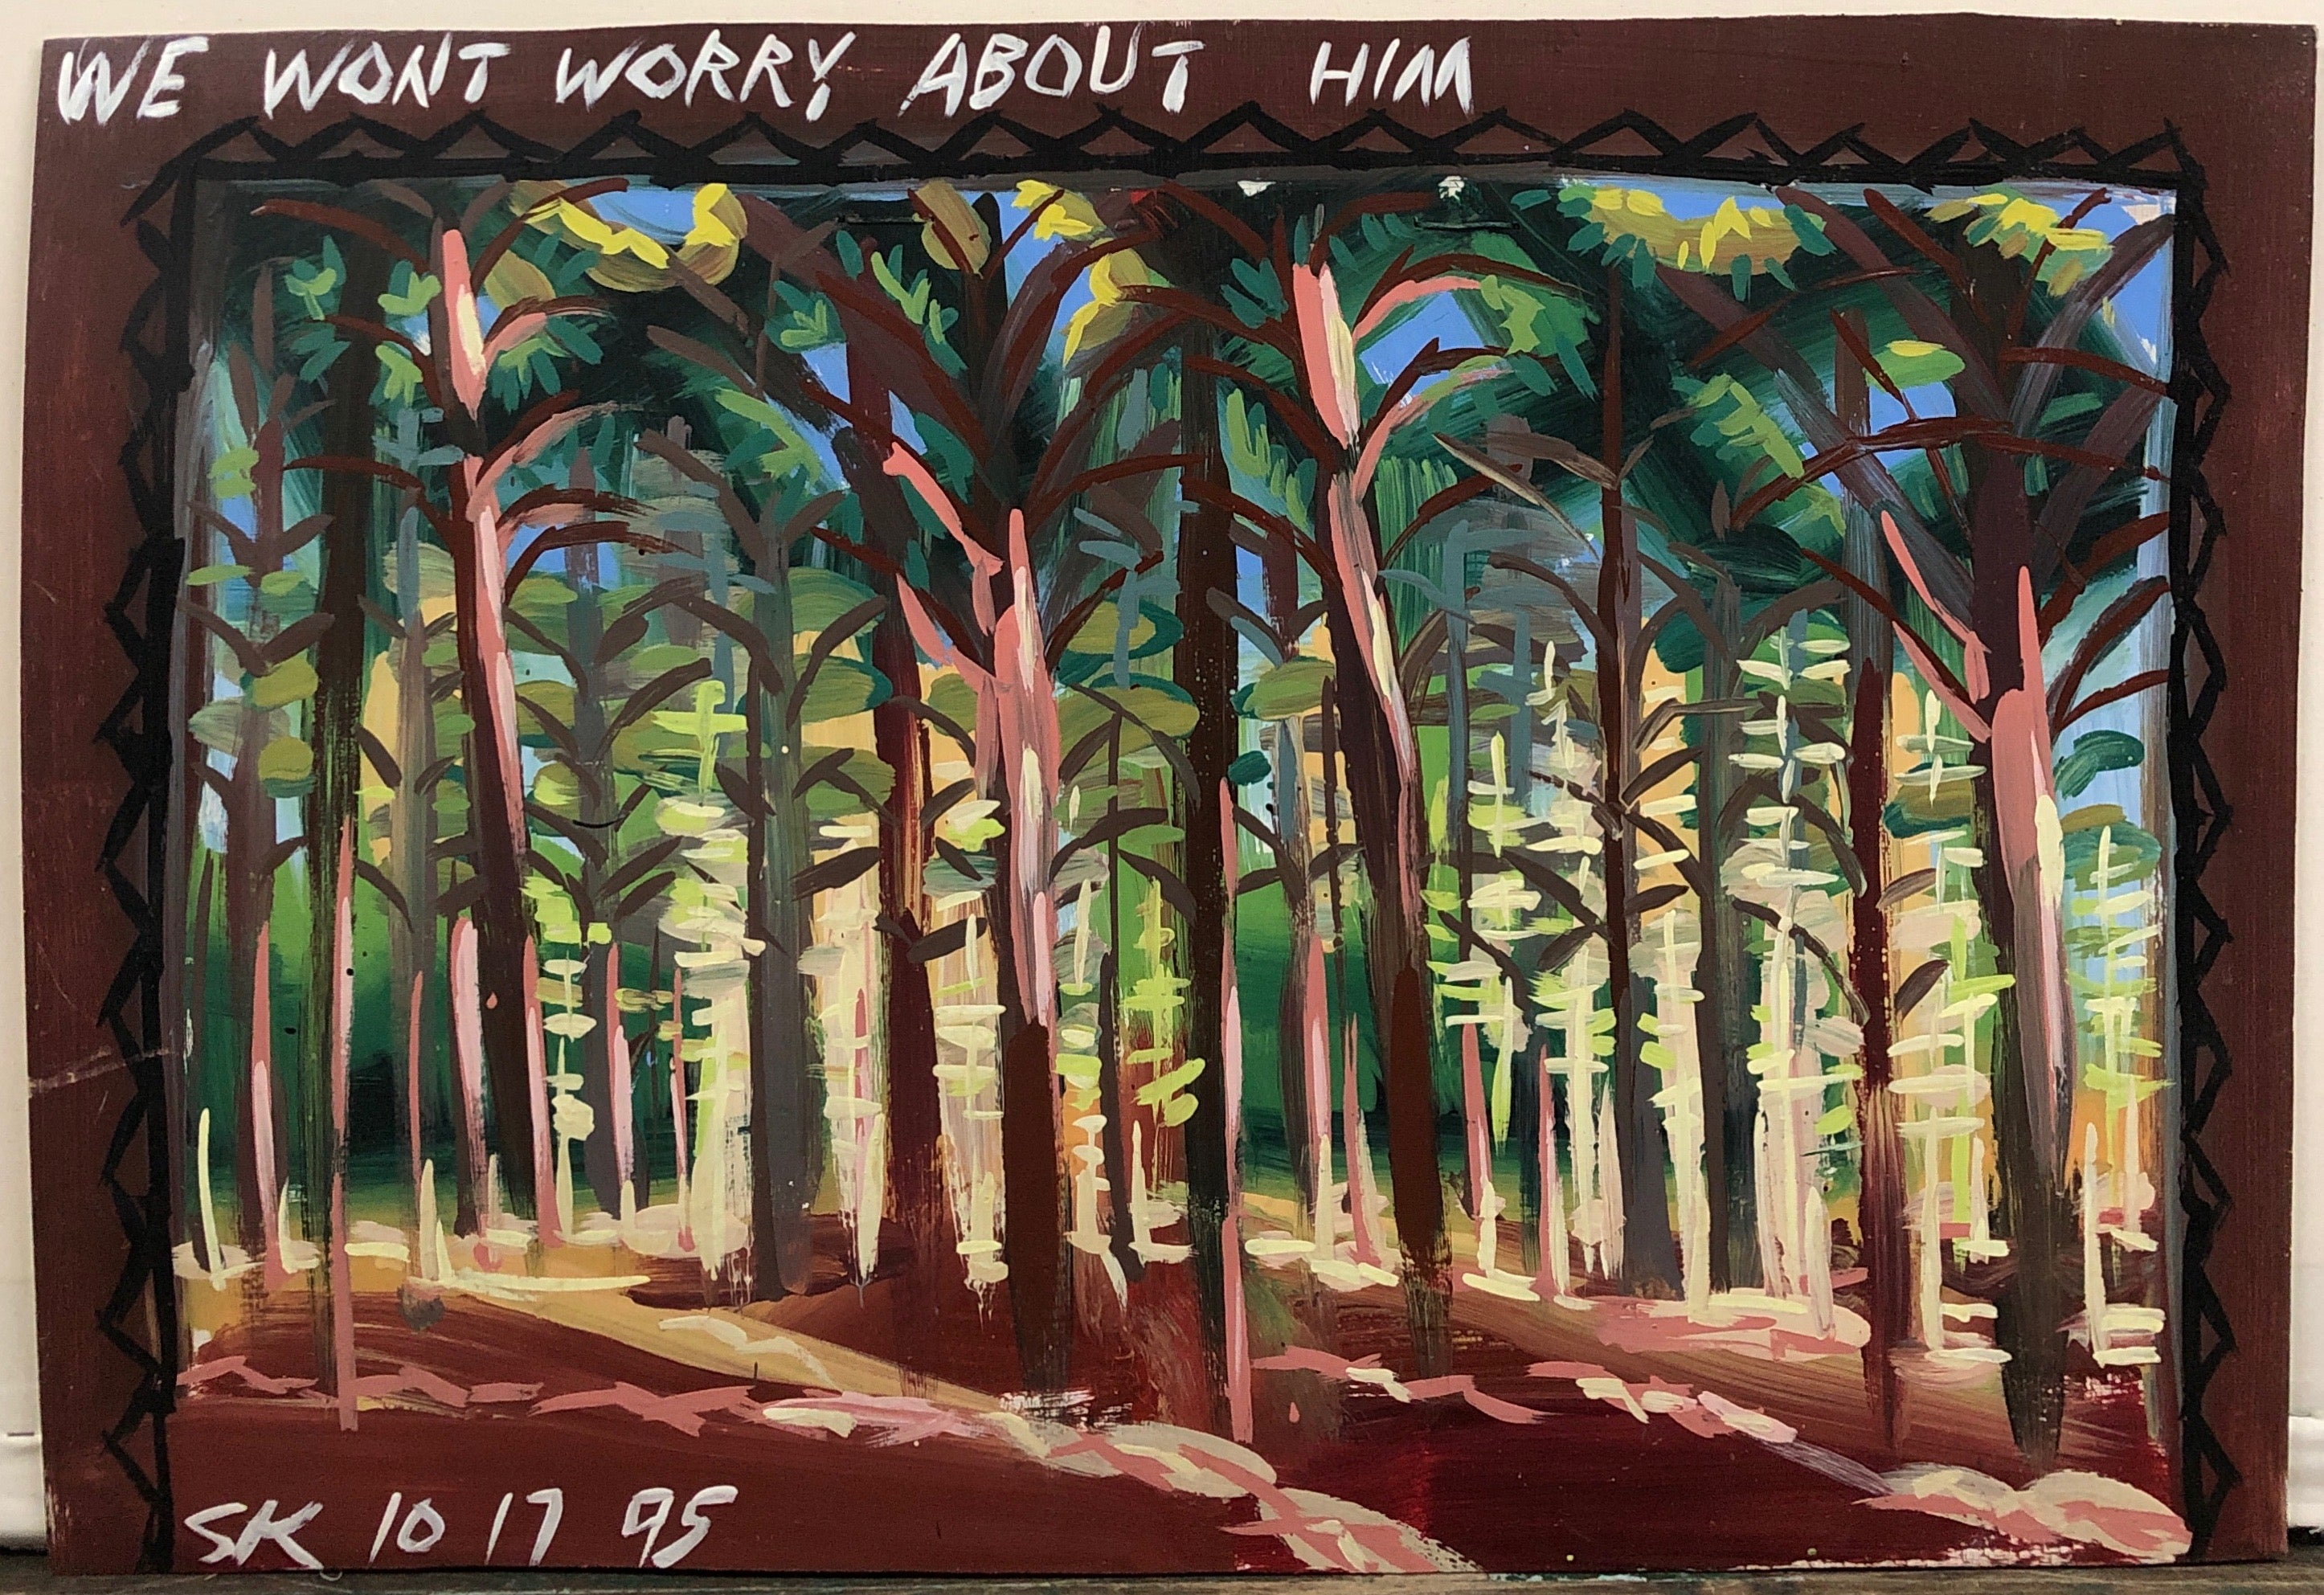 A Steve Keene painting of a forest full of tall skinny trees.